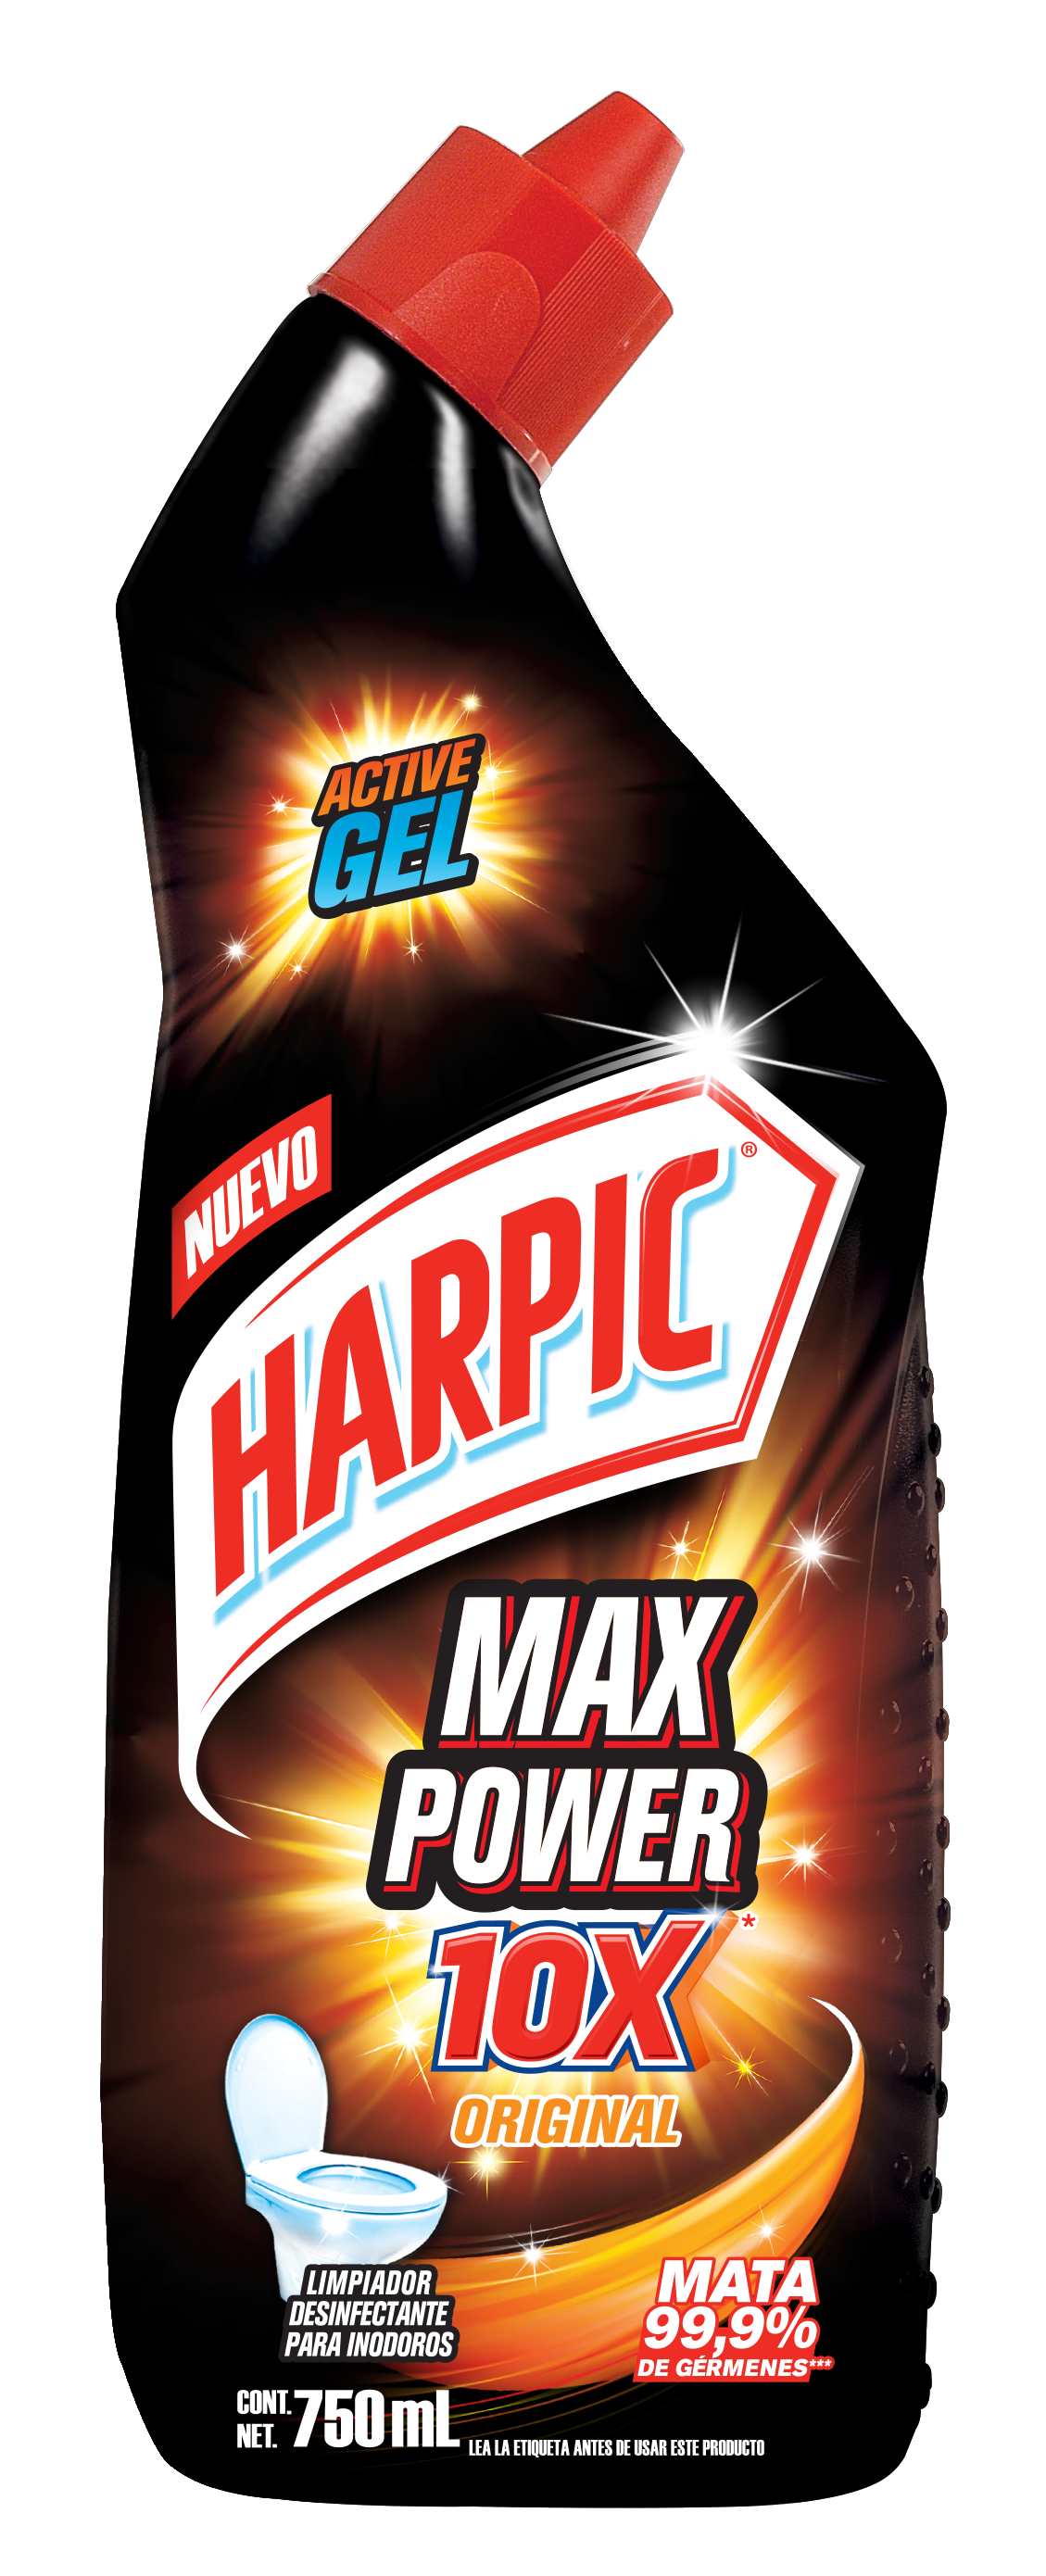 Harpic® Max Power 10x Original 750ml